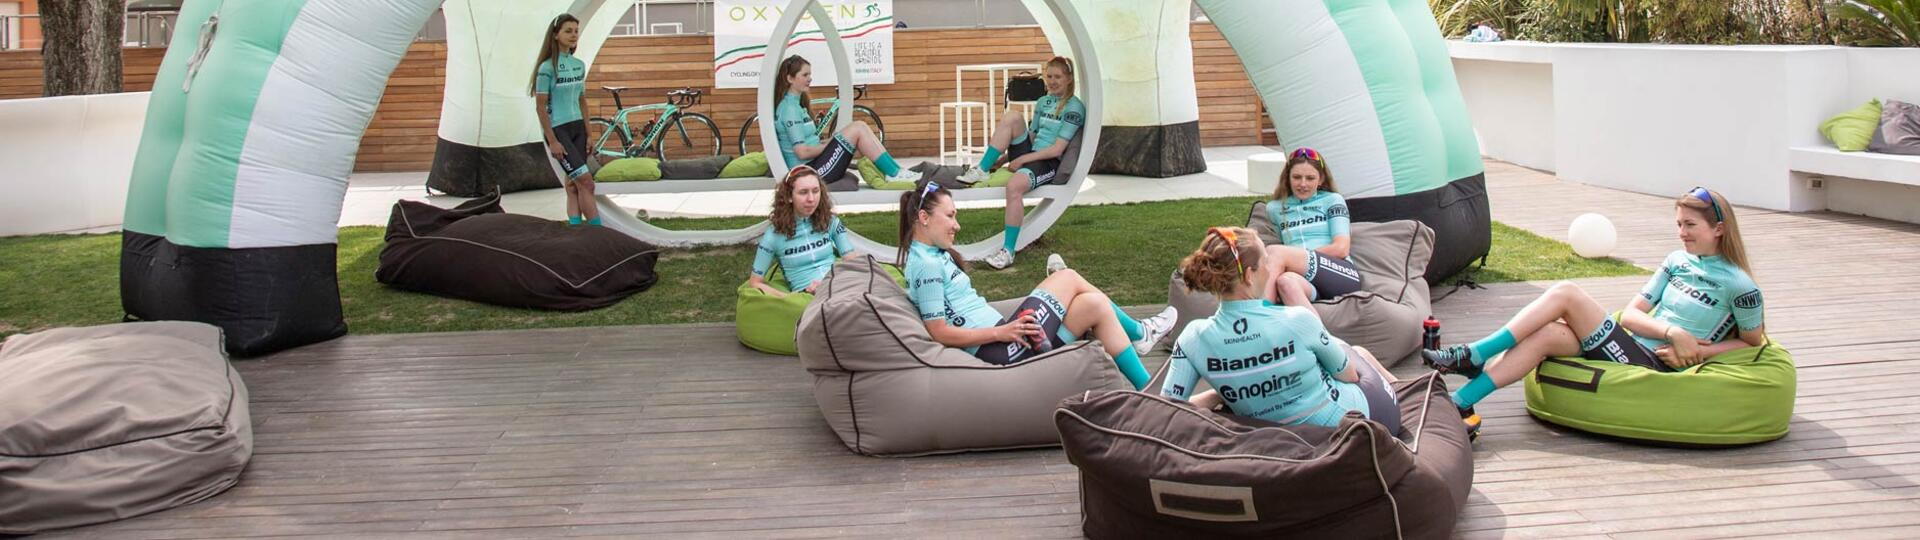 cycling.oxygenhotel en ride-with-the-whole-family-in-rimini 014